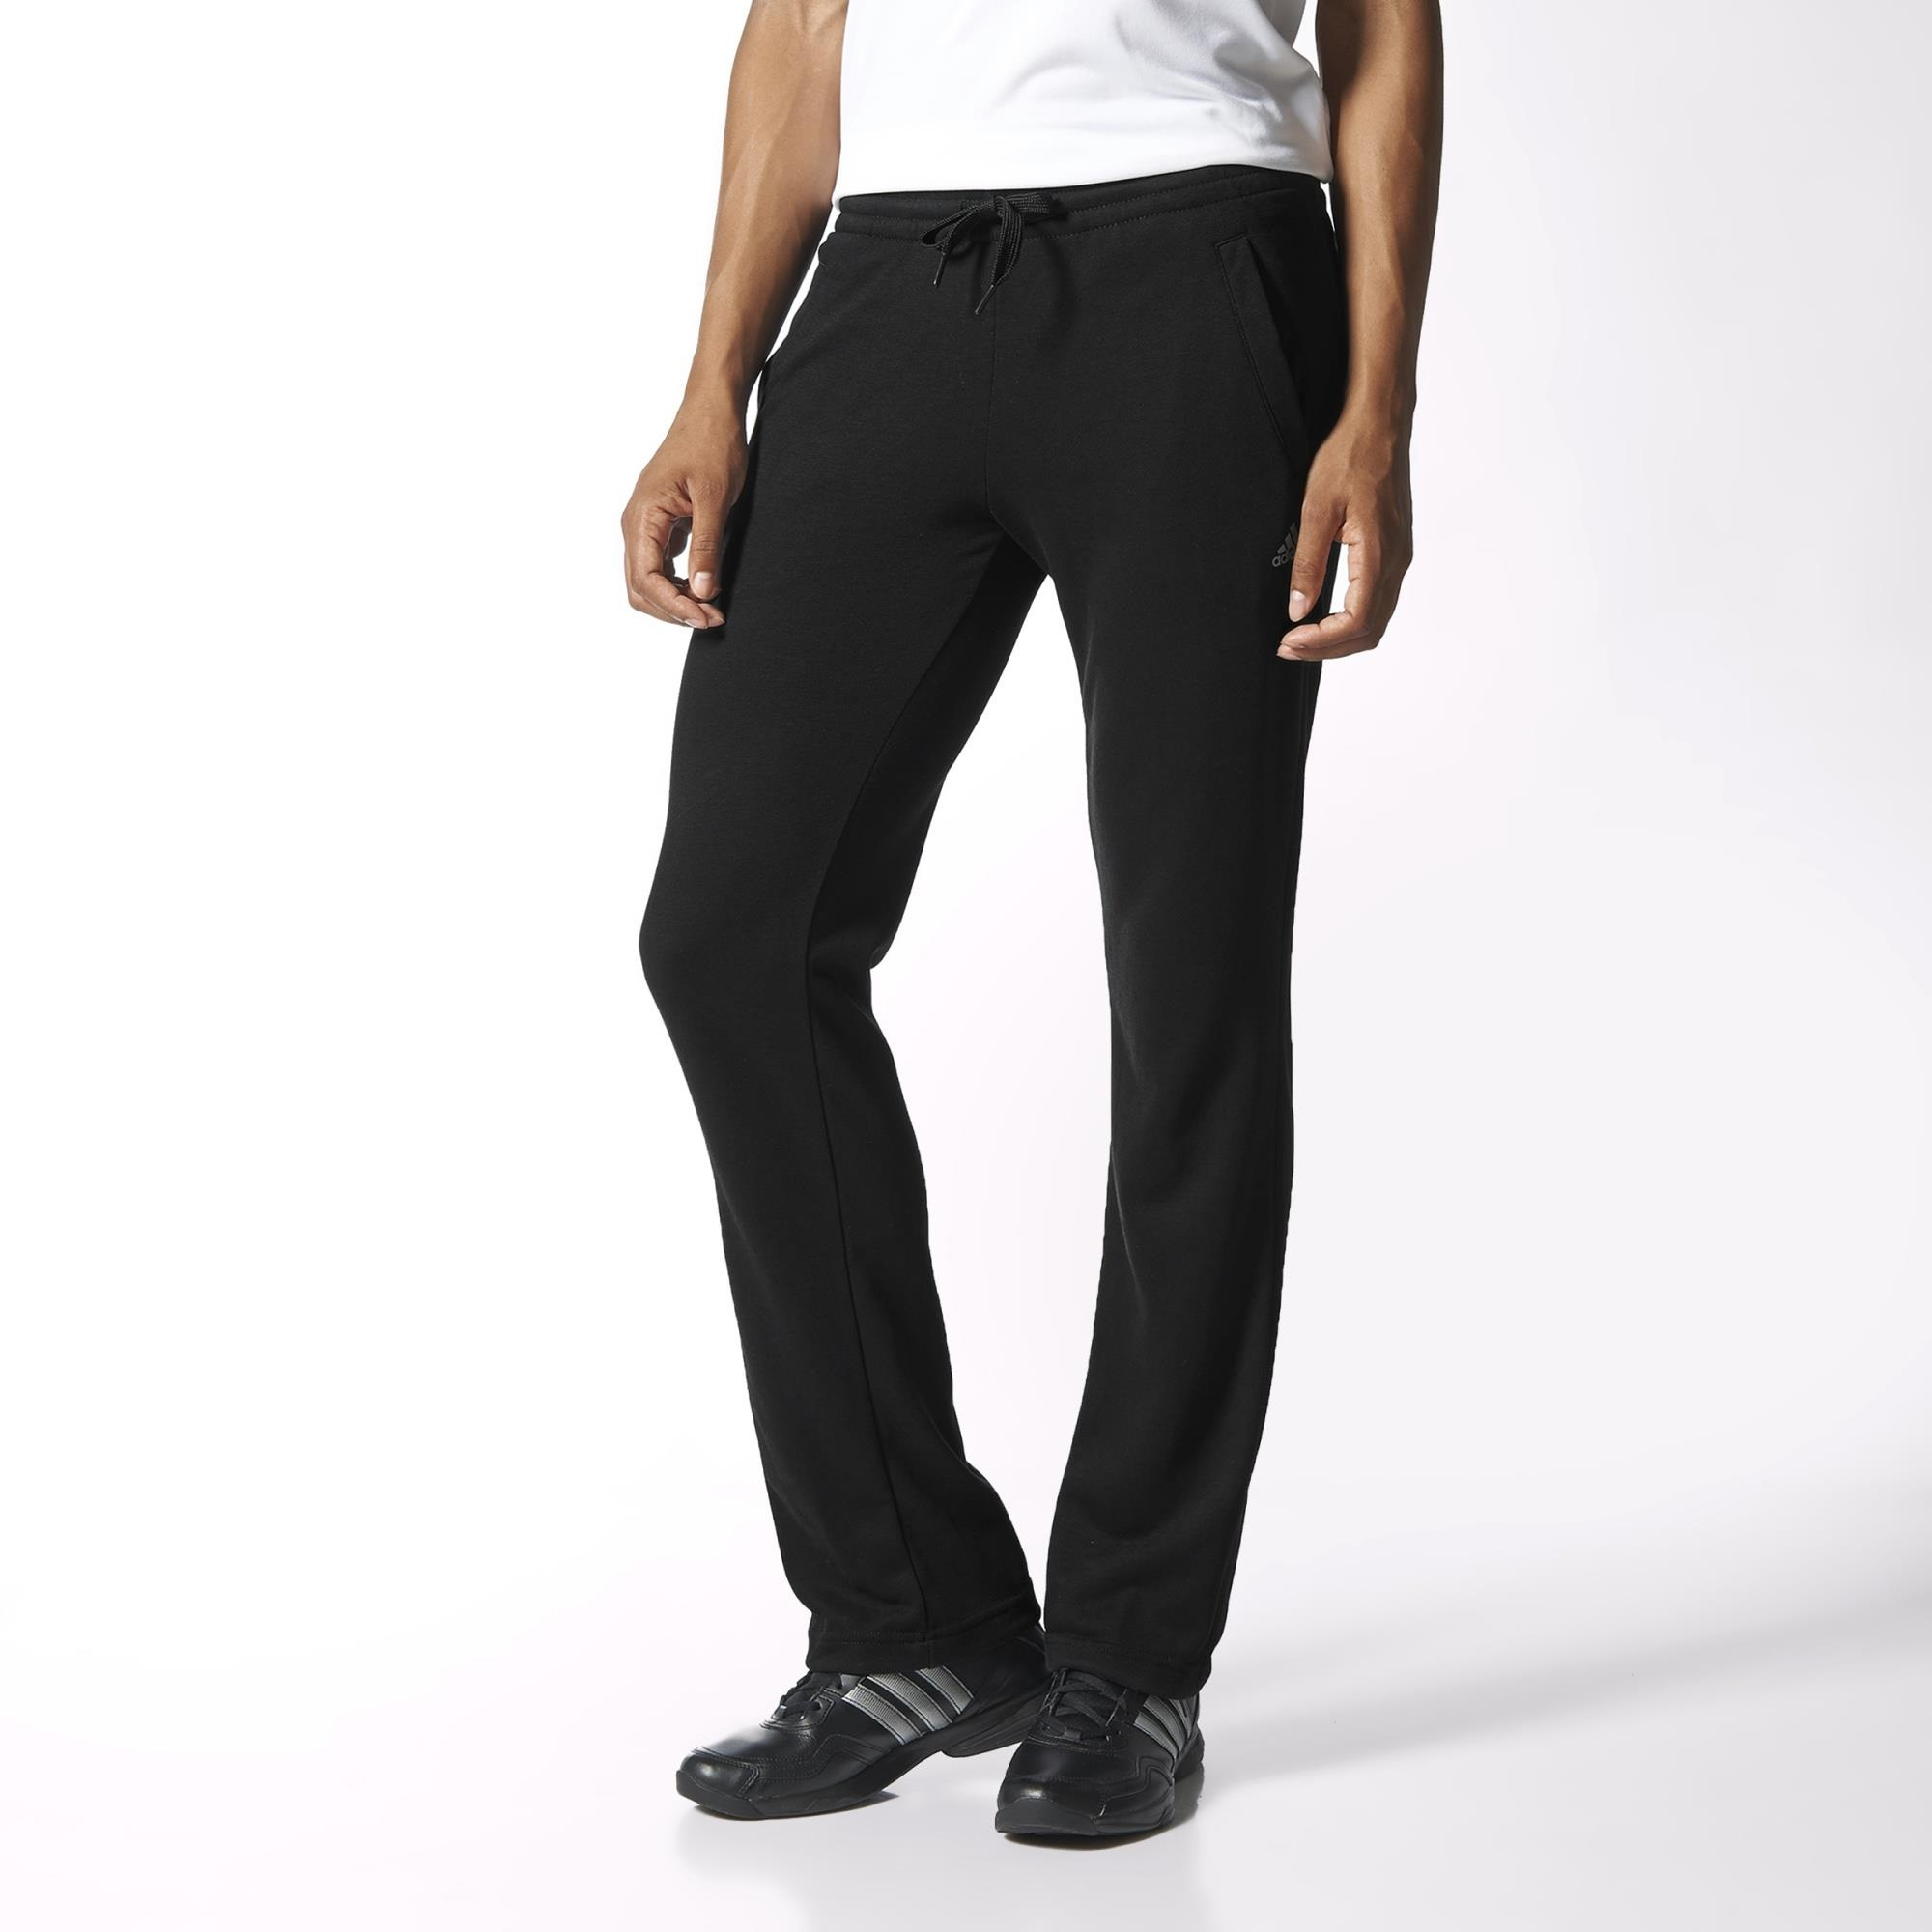 womens black pants prime photo - 1